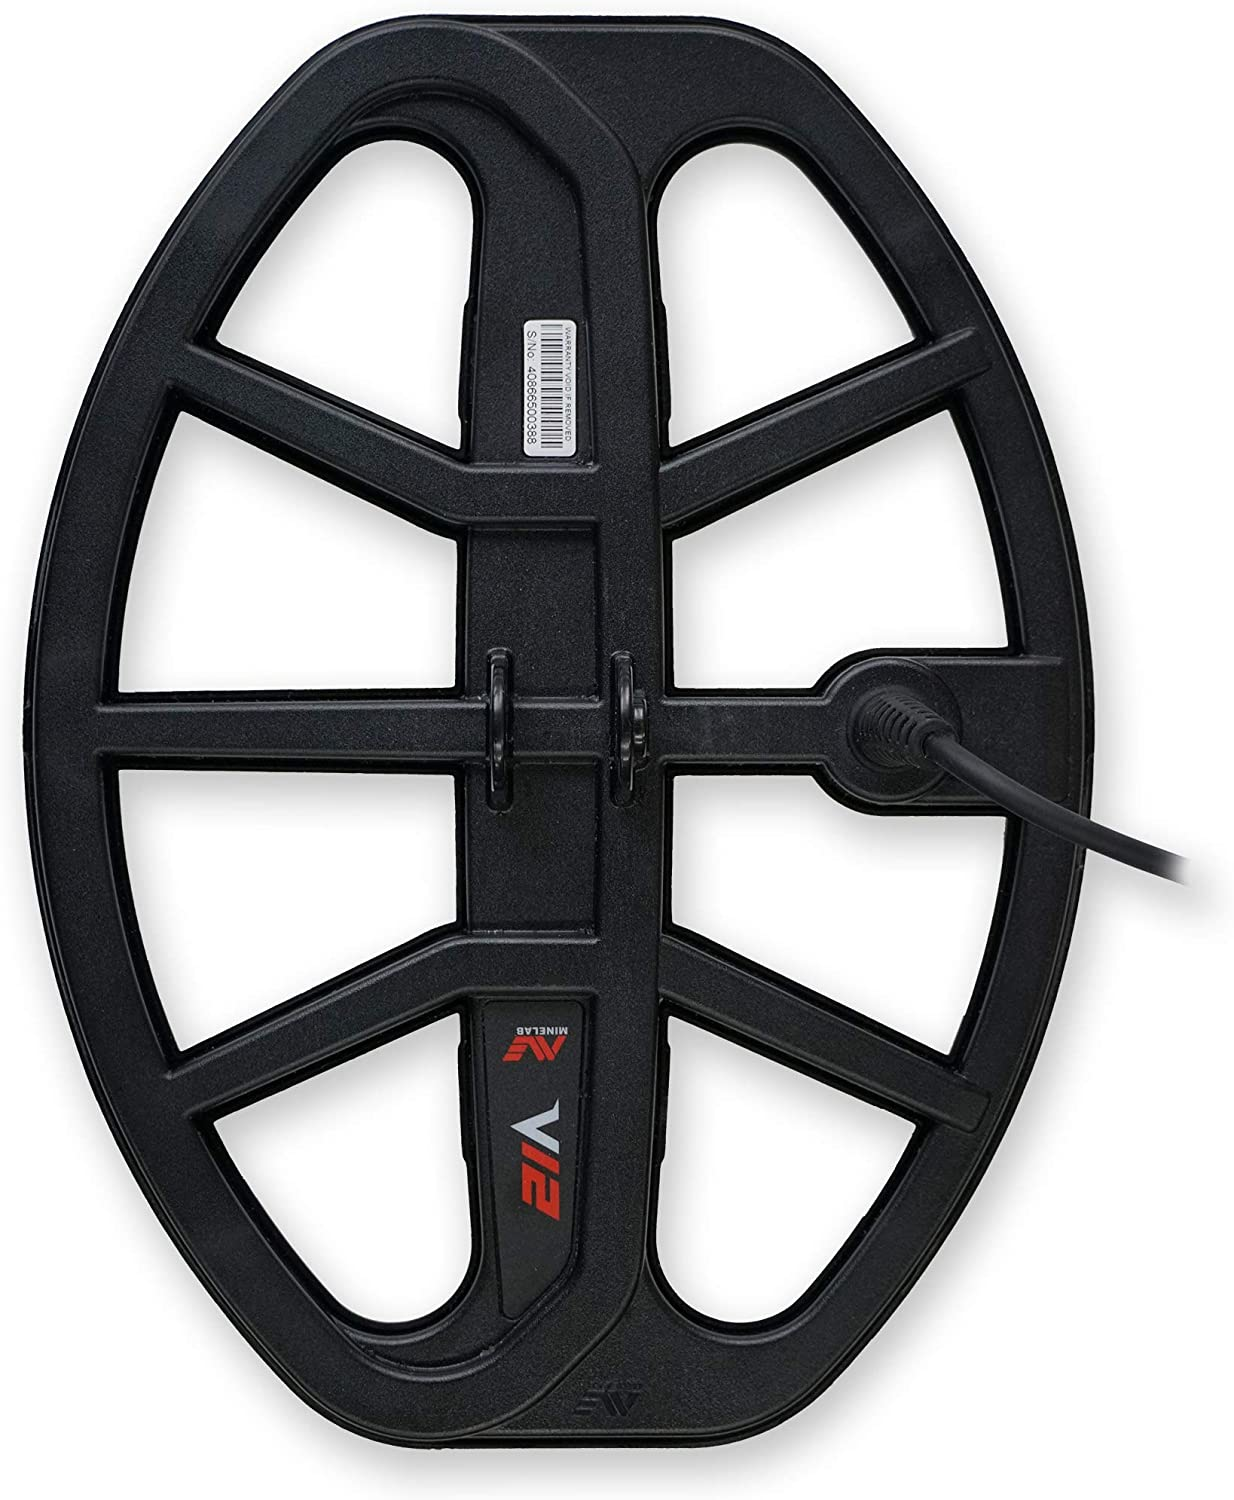 Minelab Vanquish 540 Metal Detector with V12 12 x 9 Double-D Coil